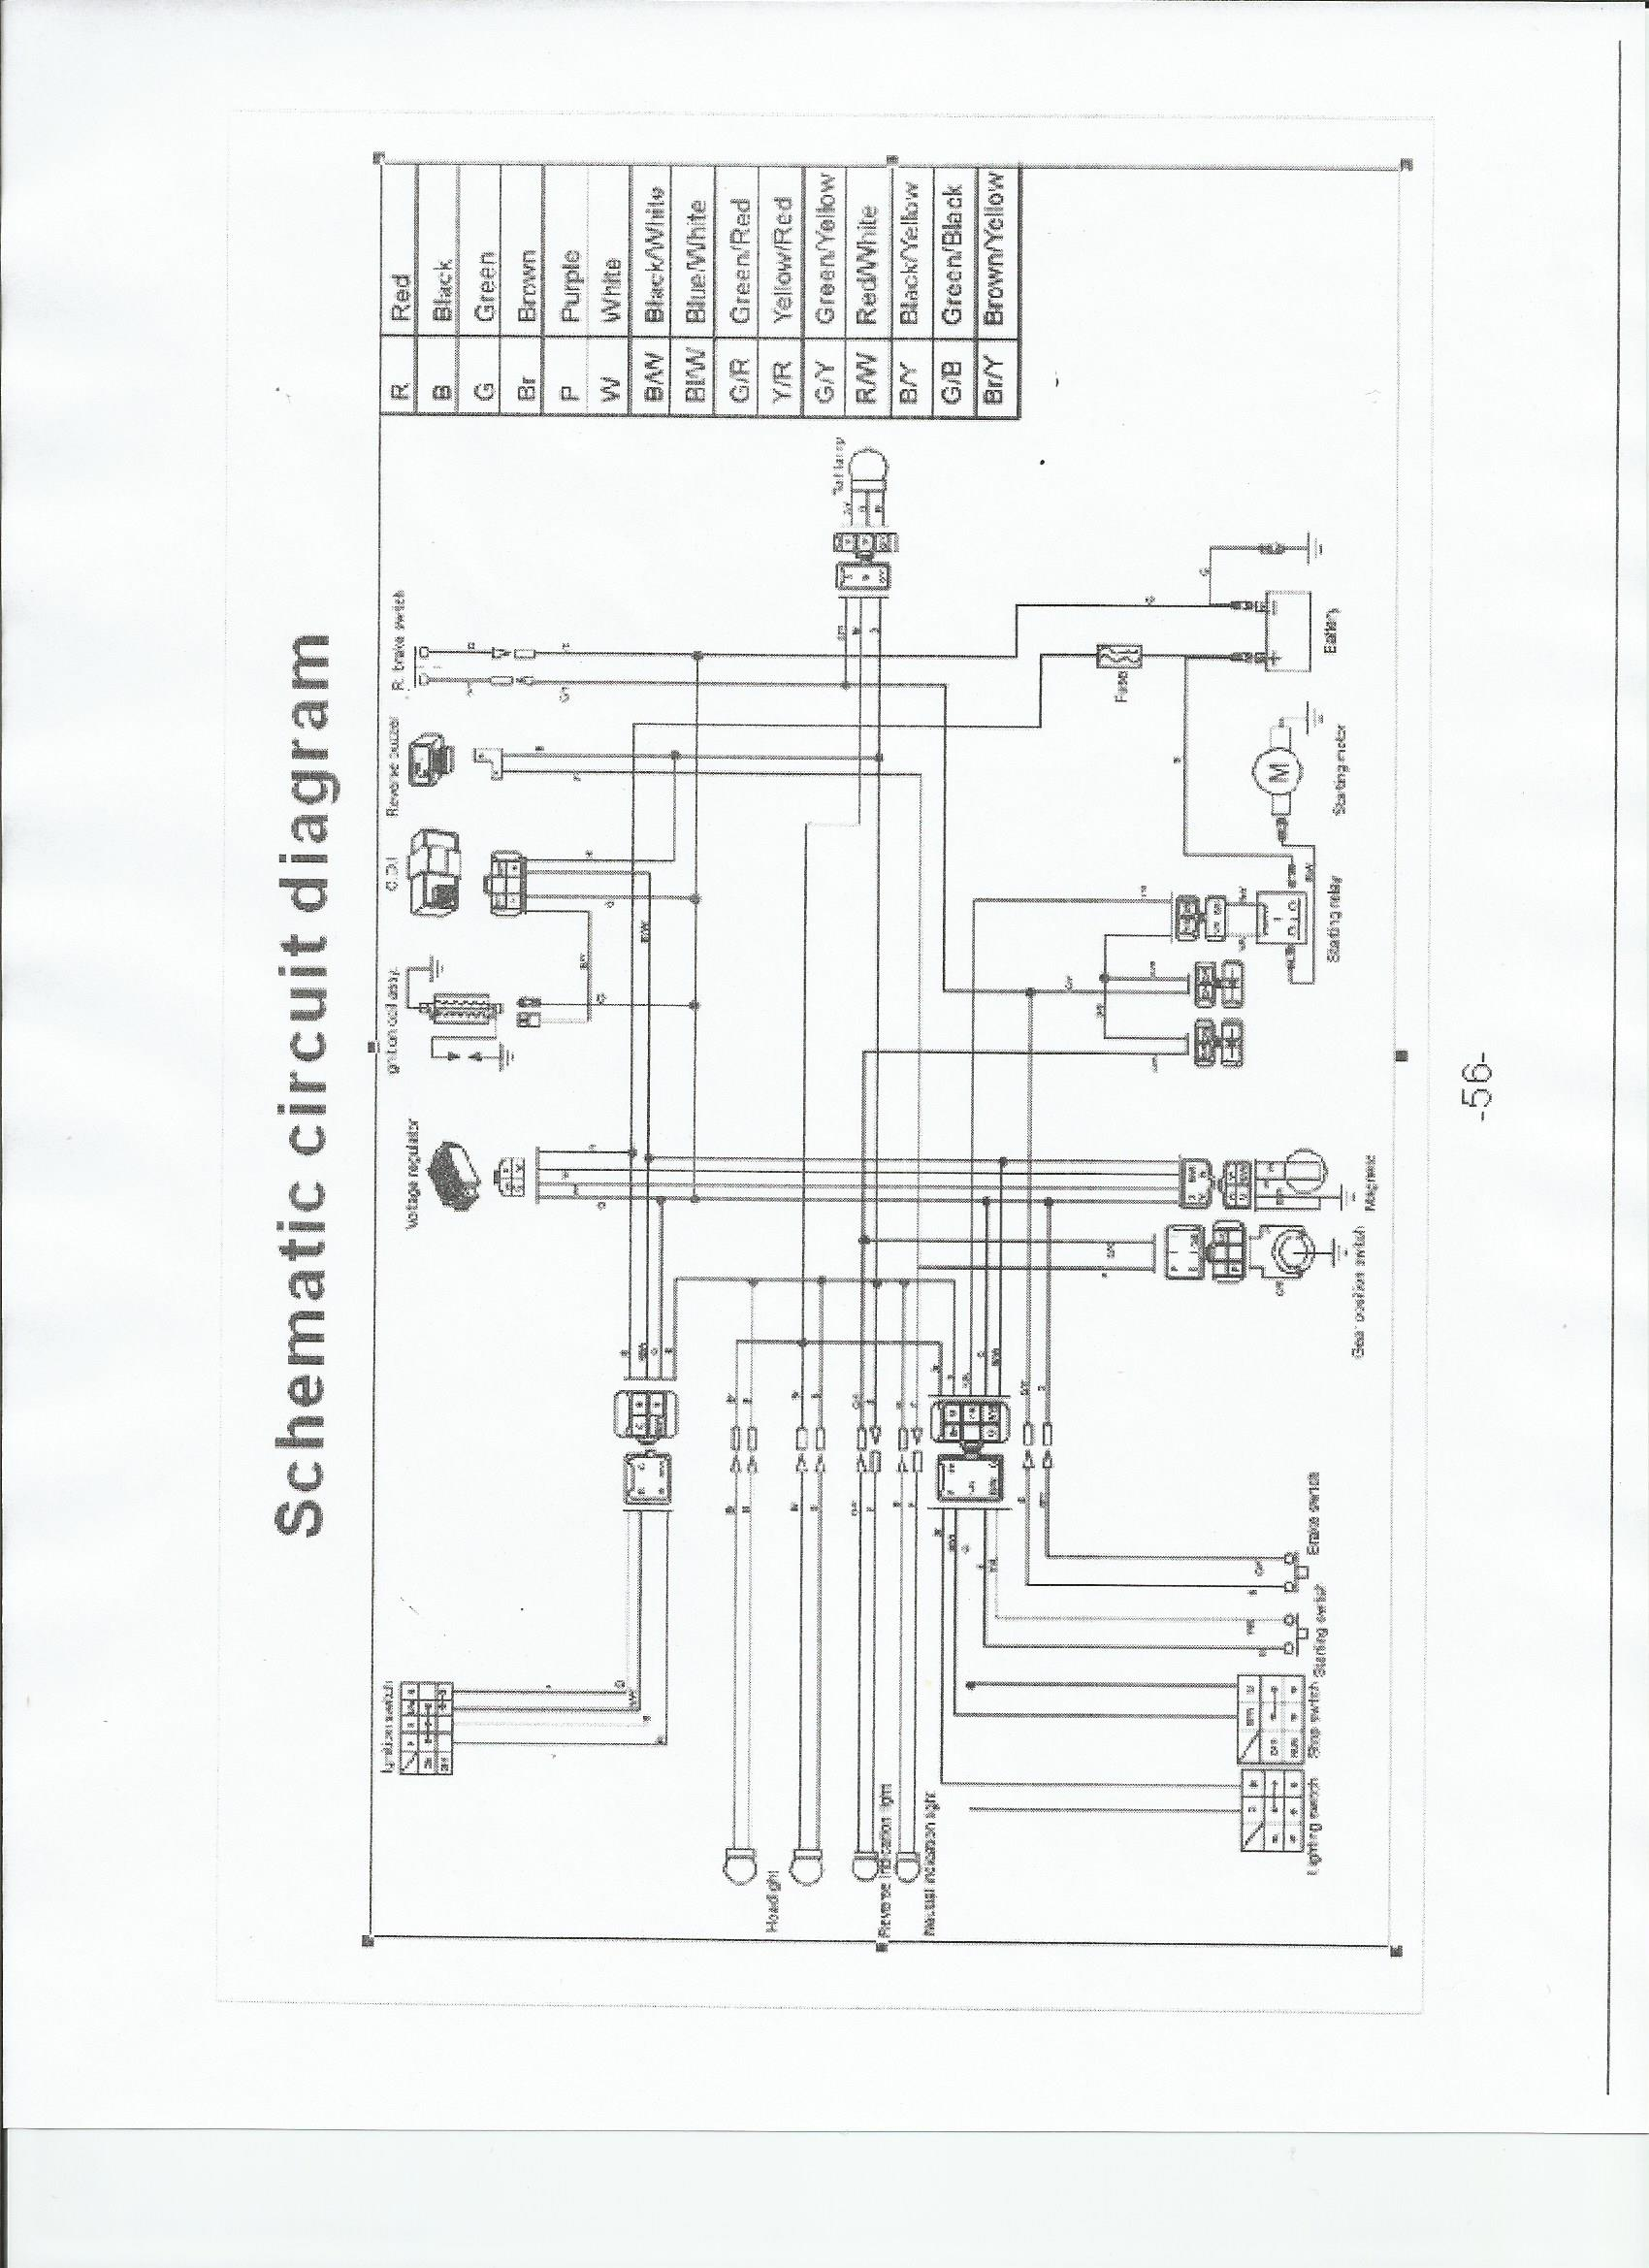 panterra dirt bike wiring diagram